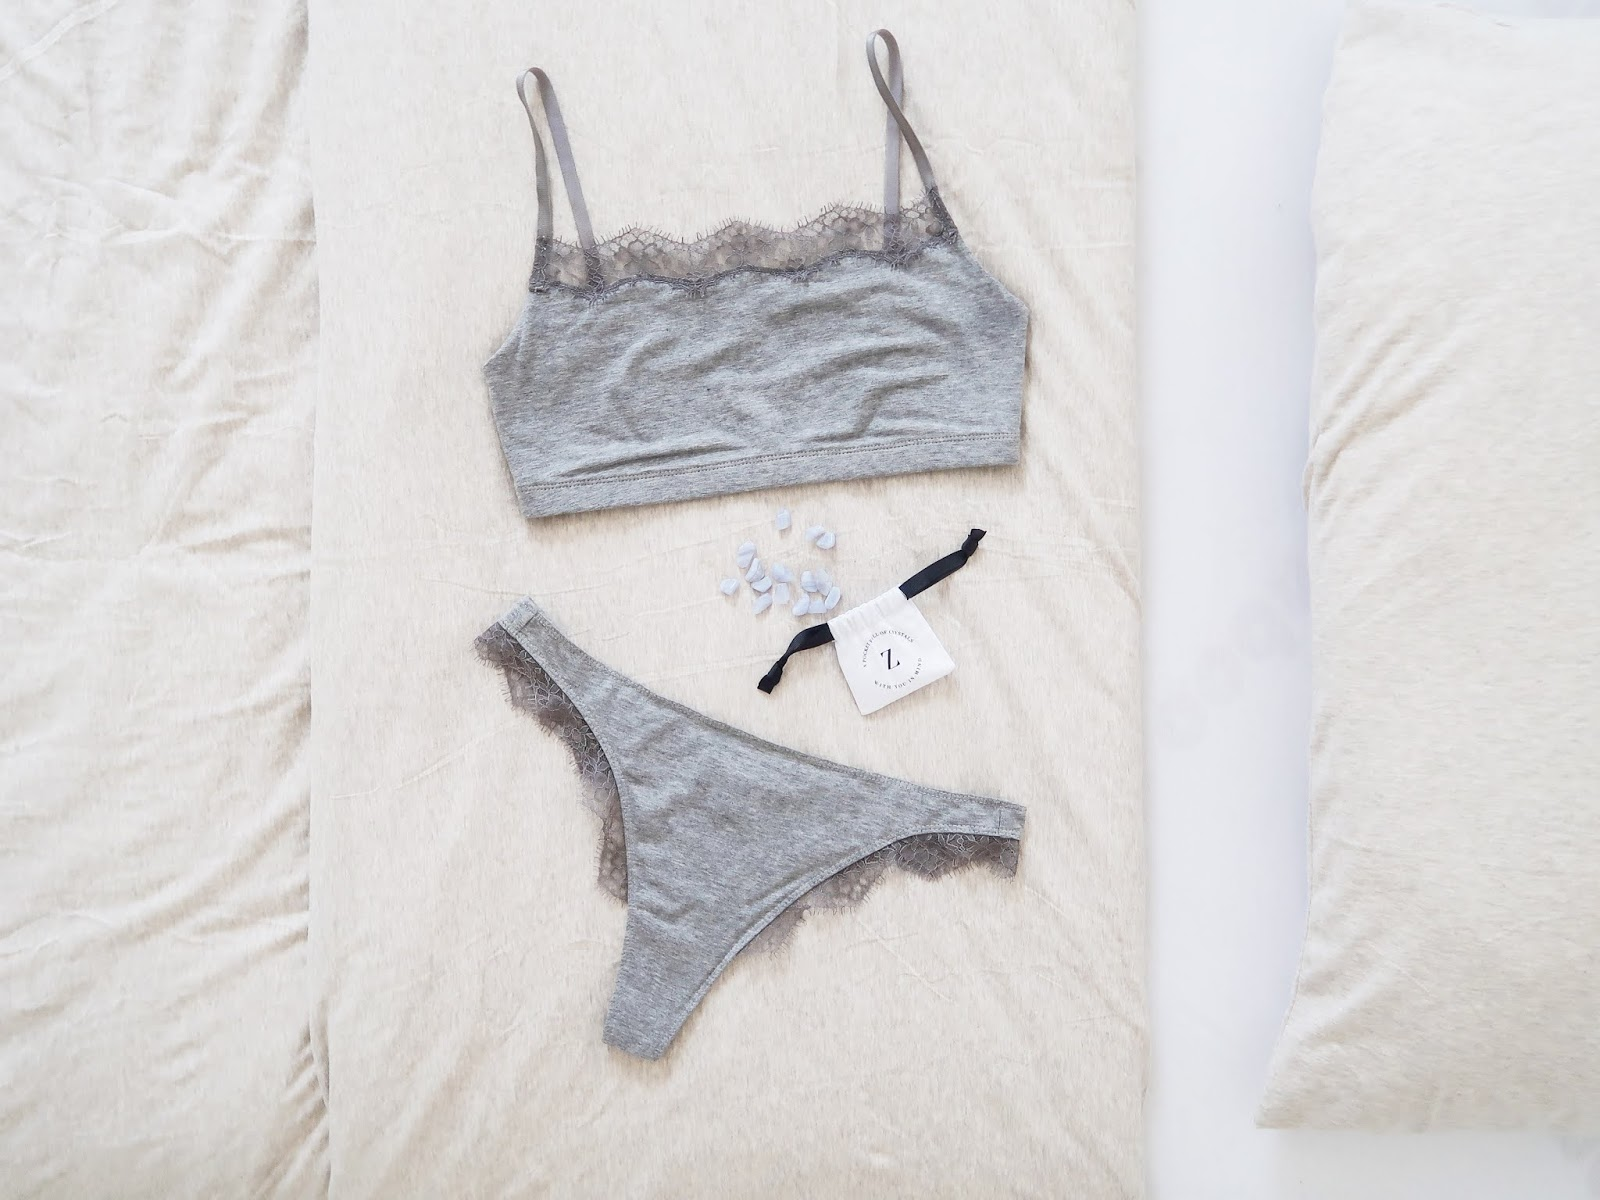 Lingerie that reminds you to take care of yourself